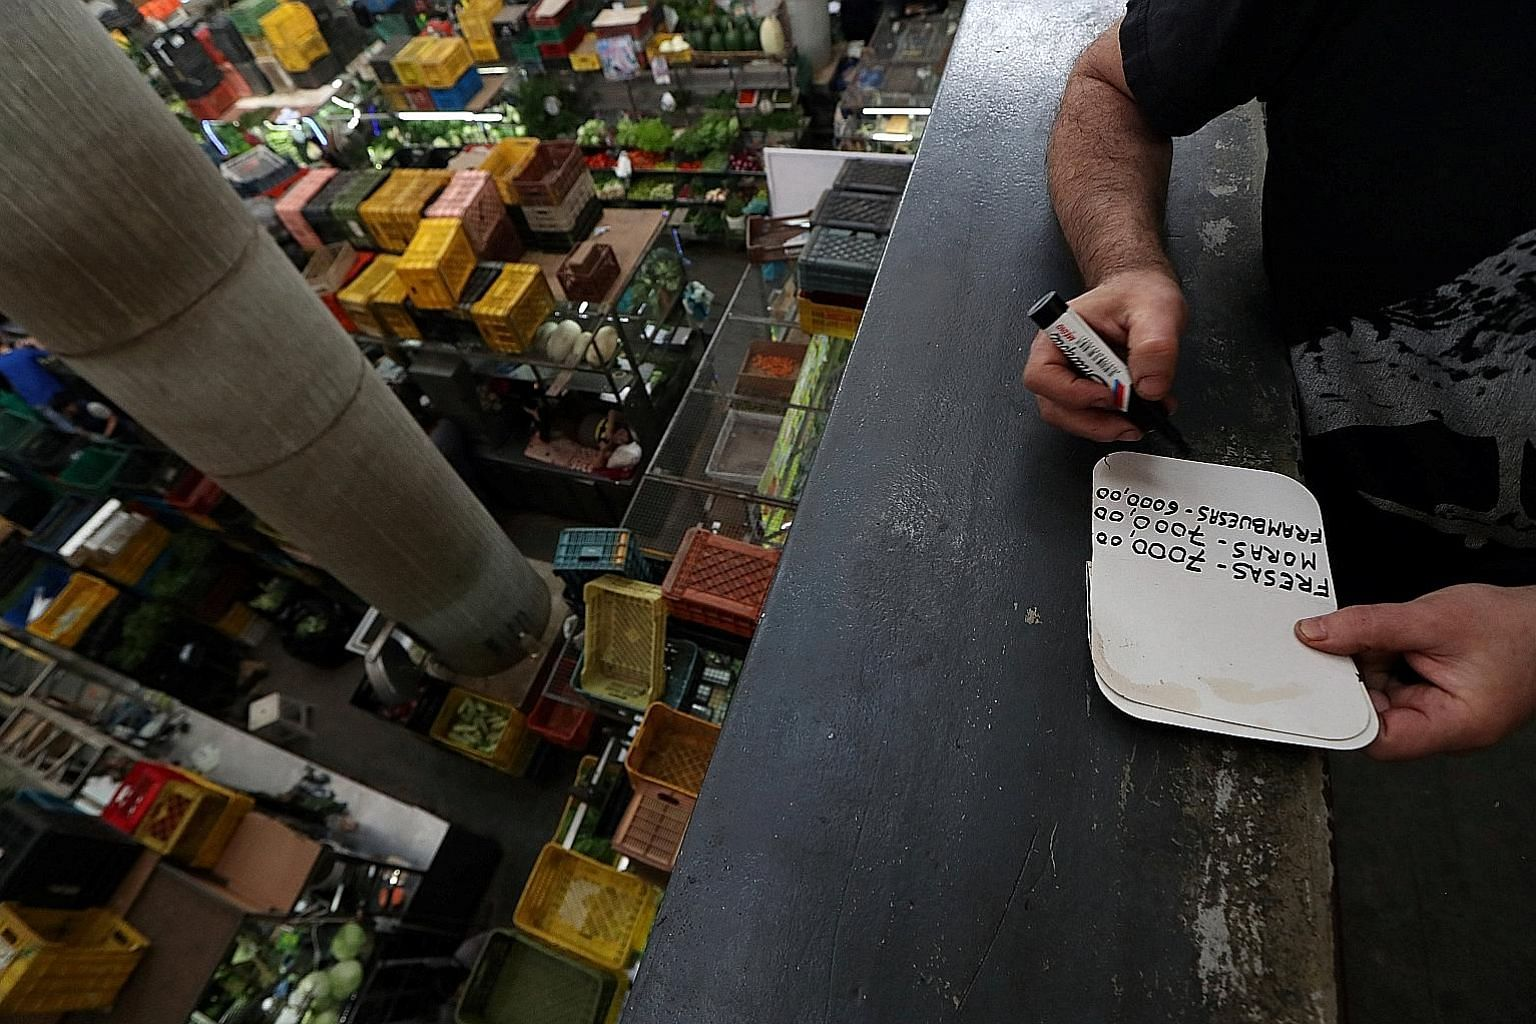 A Venezuelan man making a price list at a commercial centre in the country's capital Caracas last month. Inflation in the beleaguered South American nation is projected to hit an eyeball-popping 8 million per cent this year.